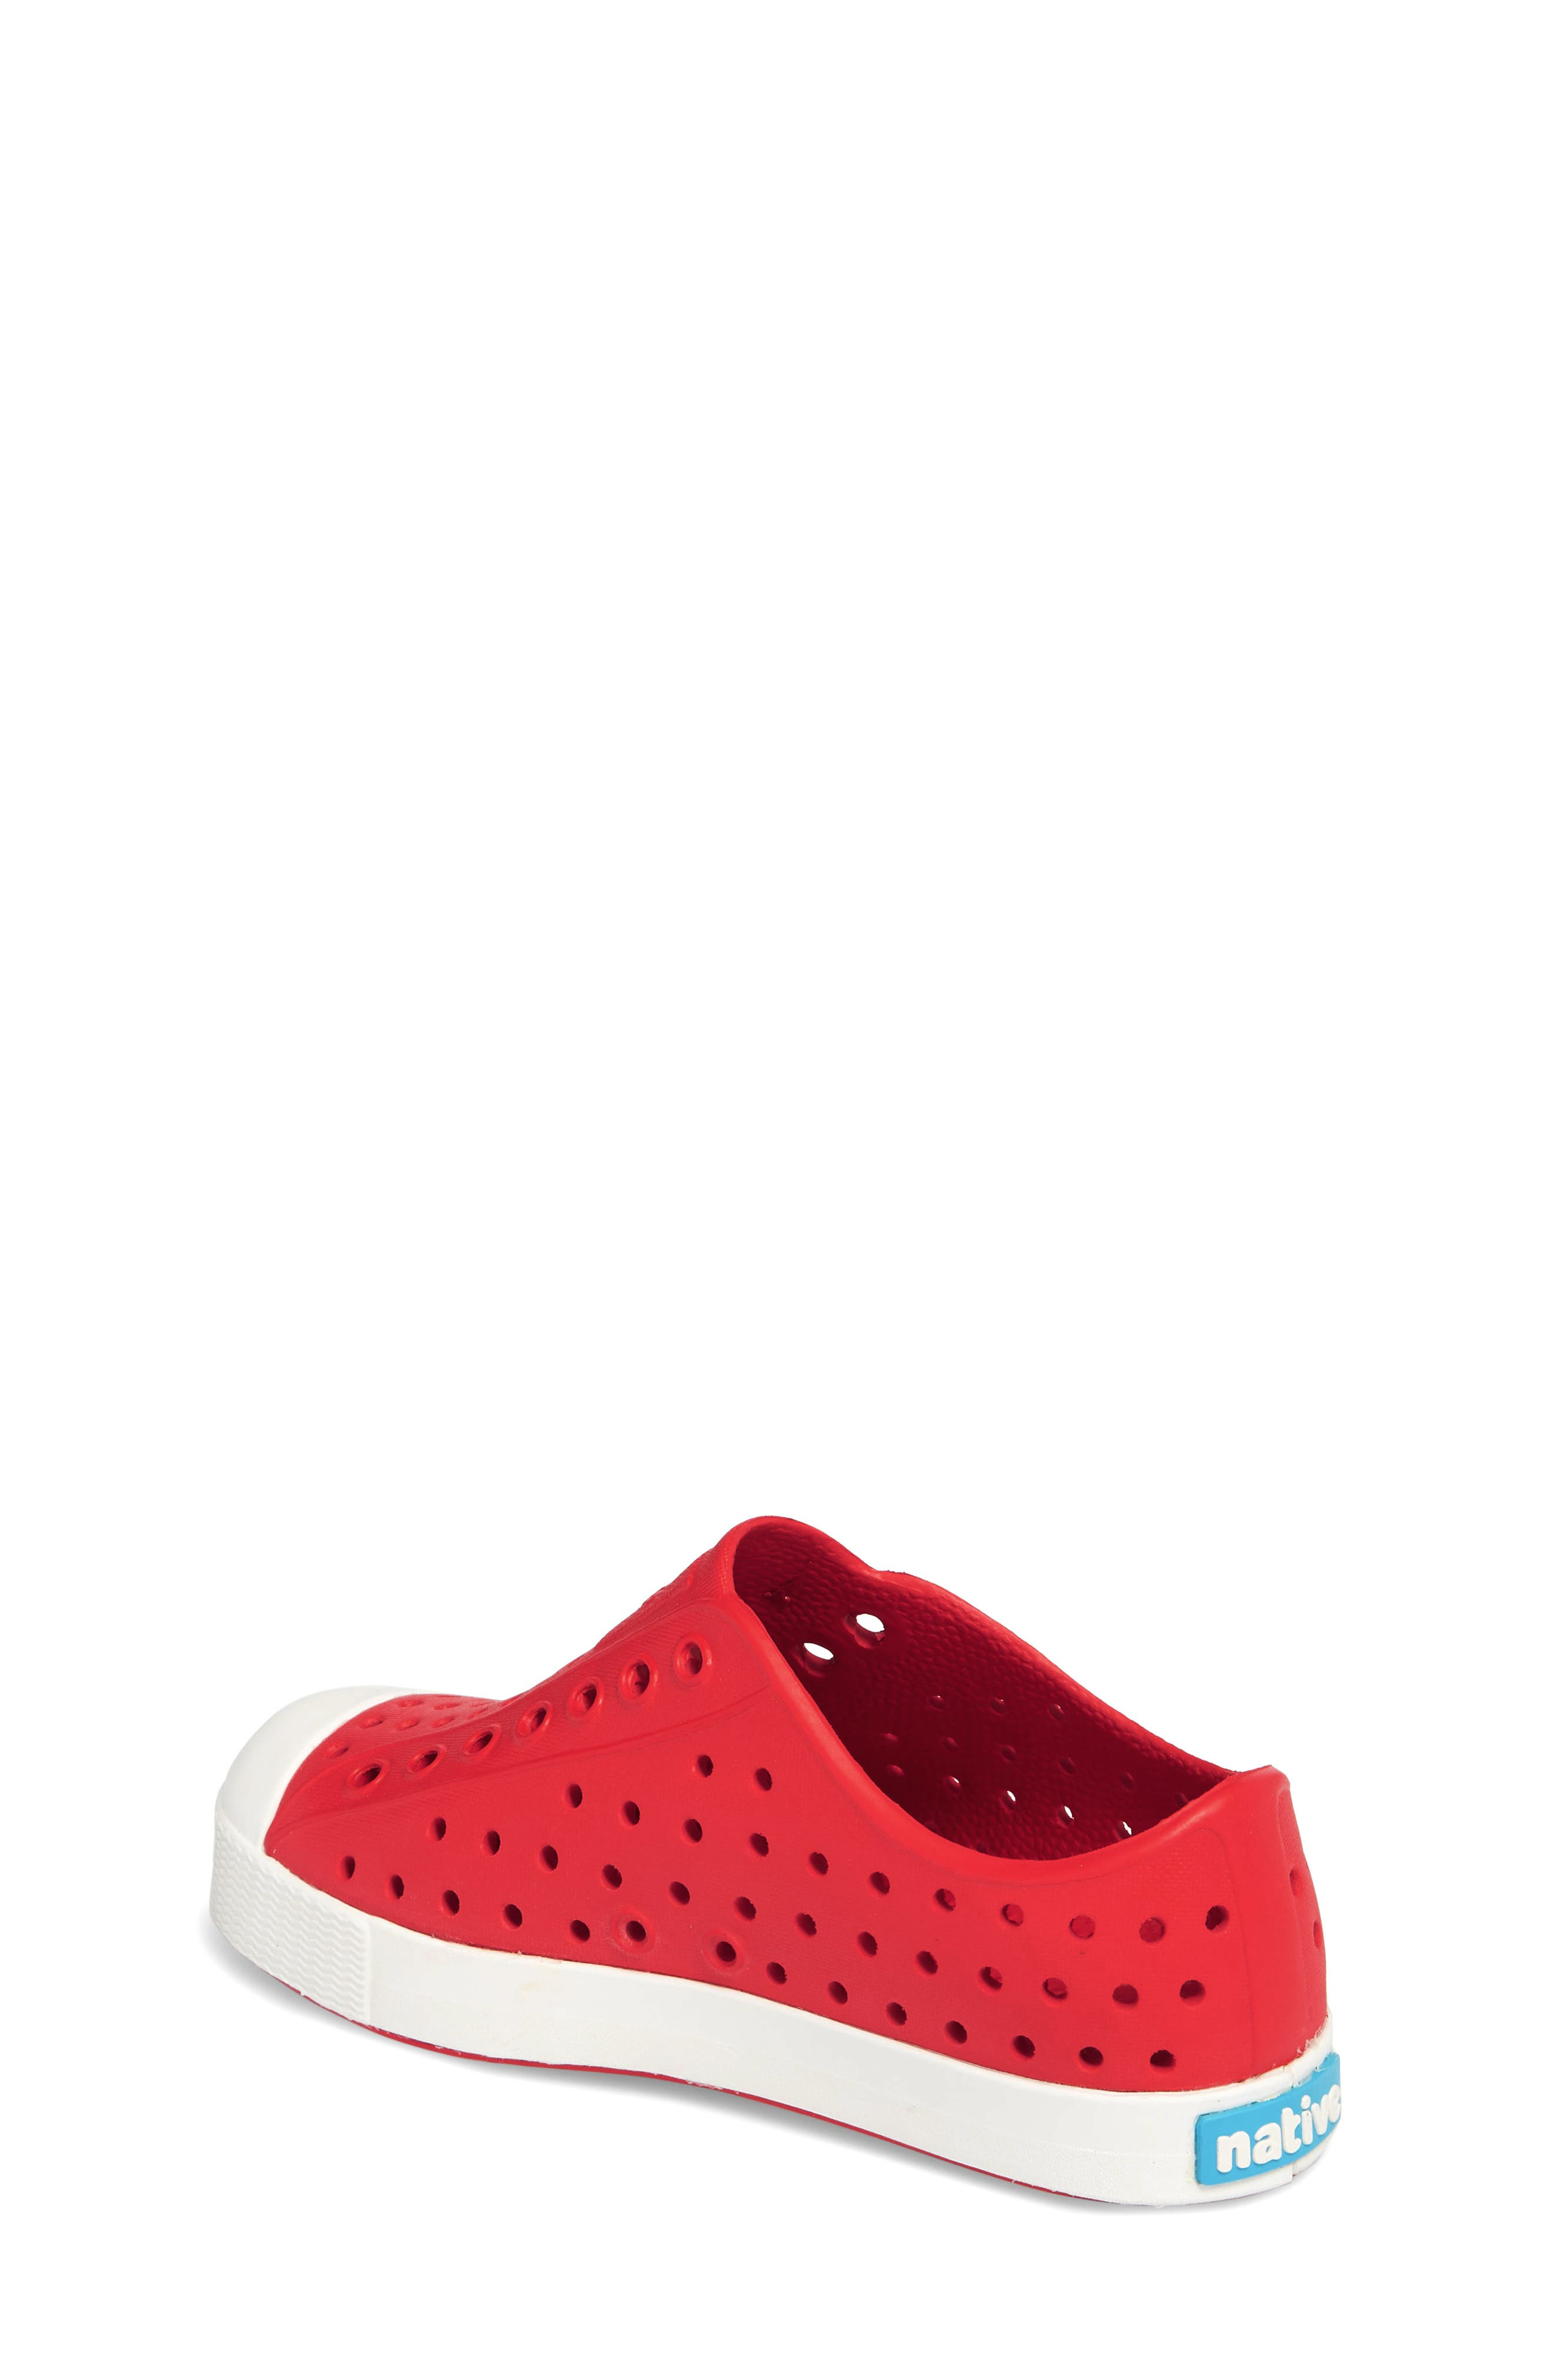 NATIVE SHOES, Jefferson Water Friendly Slip-On Vegan Sneaker, Alternate thumbnail 2, color, TORCH RED/ SHELL WHITE